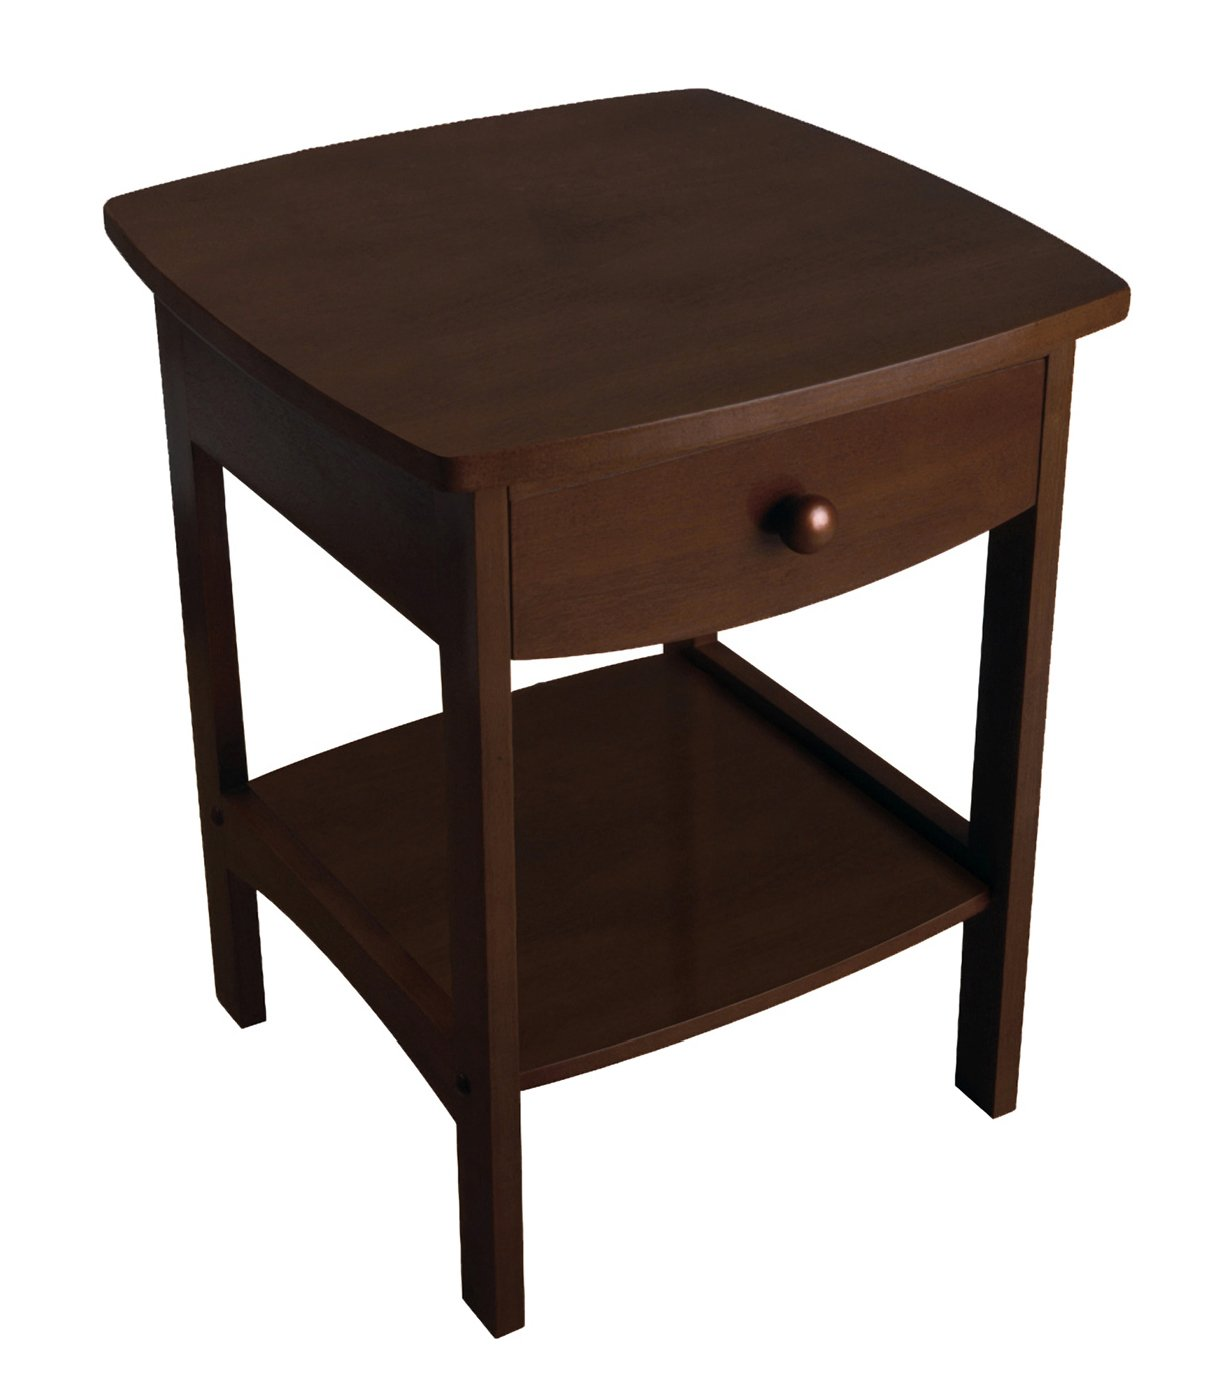 winsome wood claire accent table walnut kitchen black marble dining rose gold home decor glass legs red tables outdoor sideboard cabinet target media narrow depth console treasure